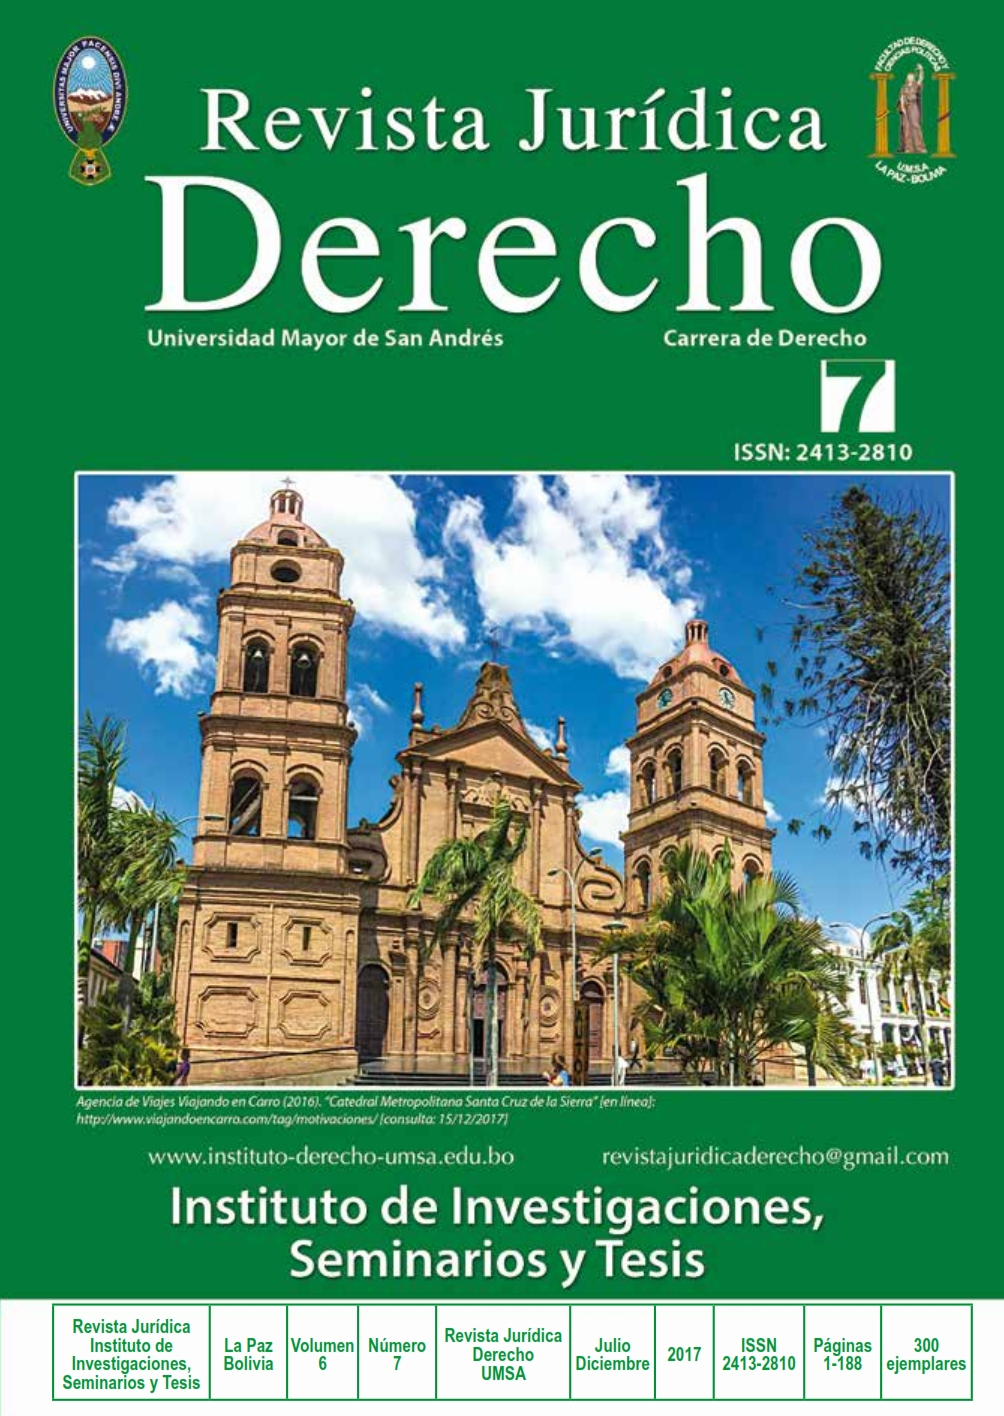 Revista Jurídica No. 7